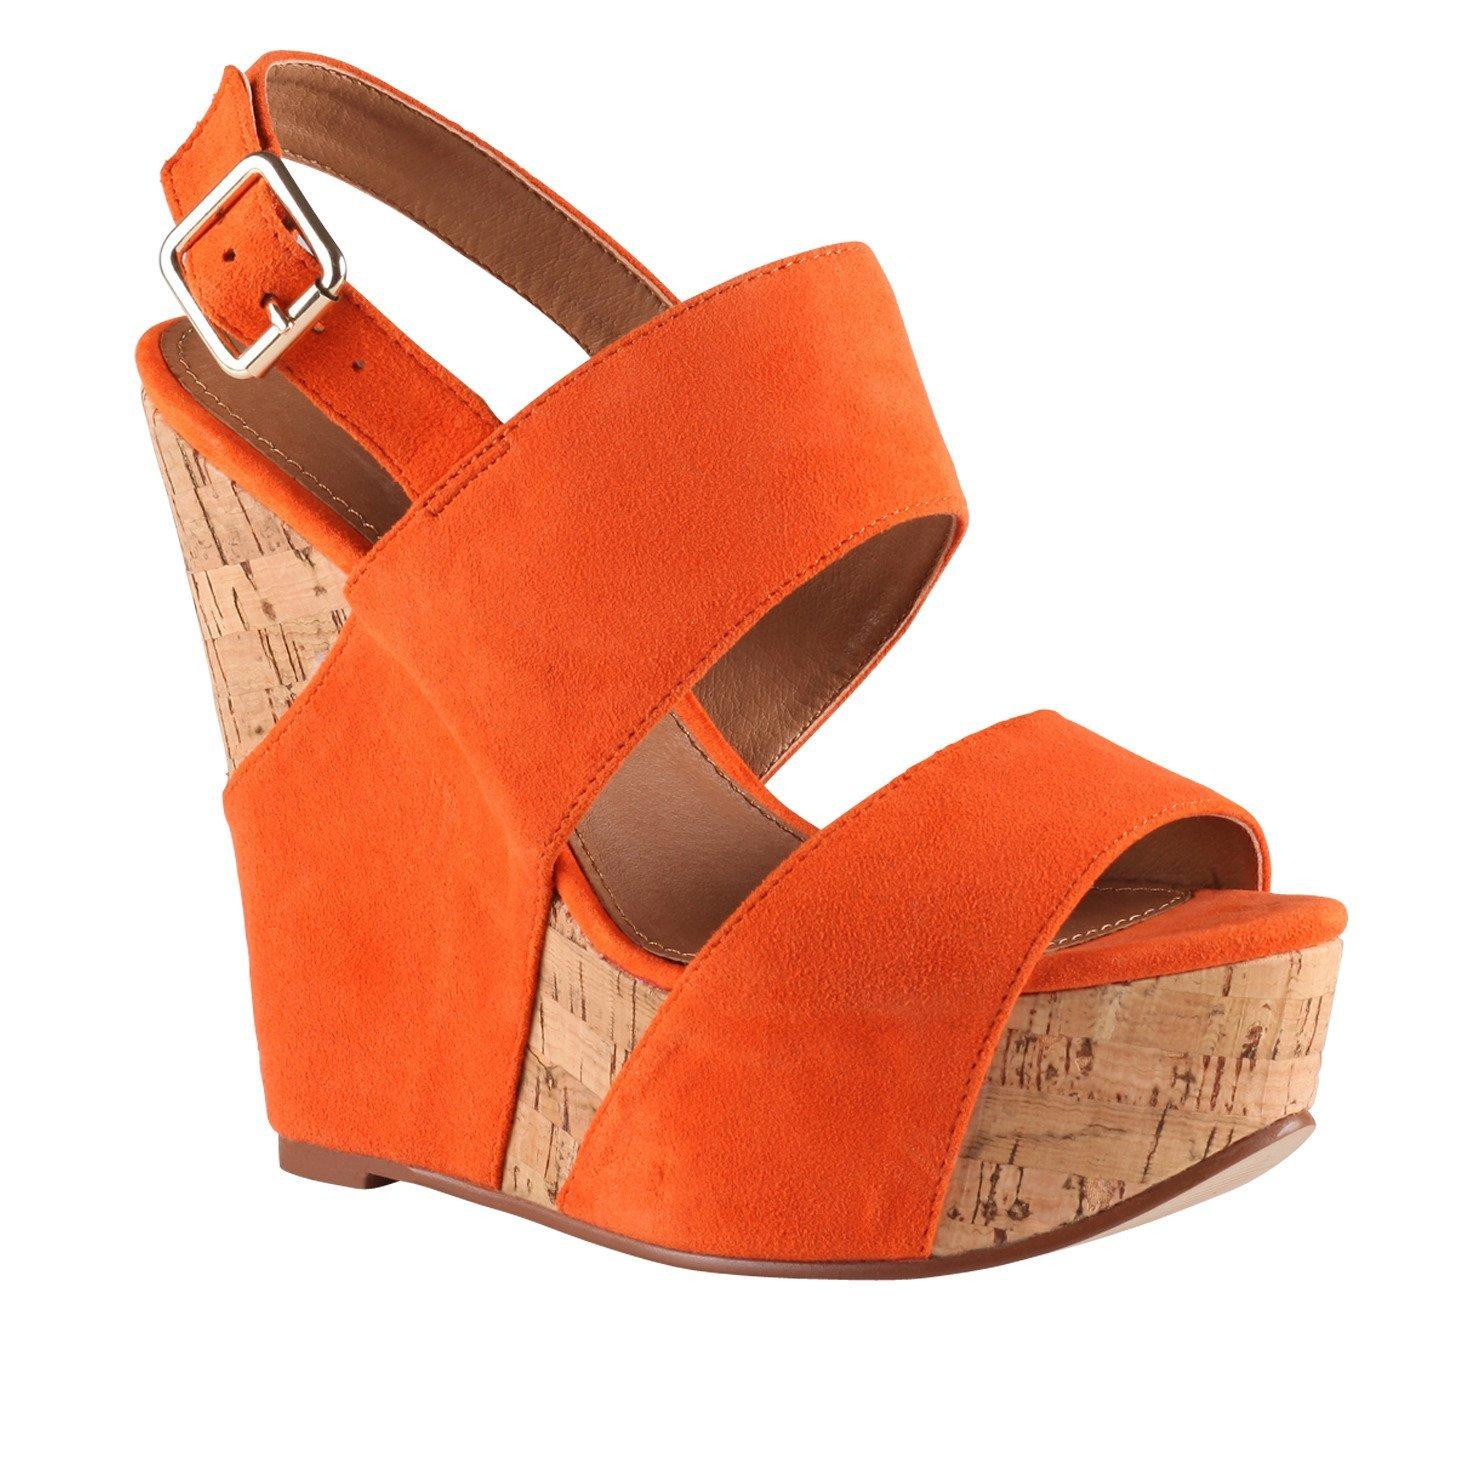 aldo samcova wedge sandals from fashion shoes